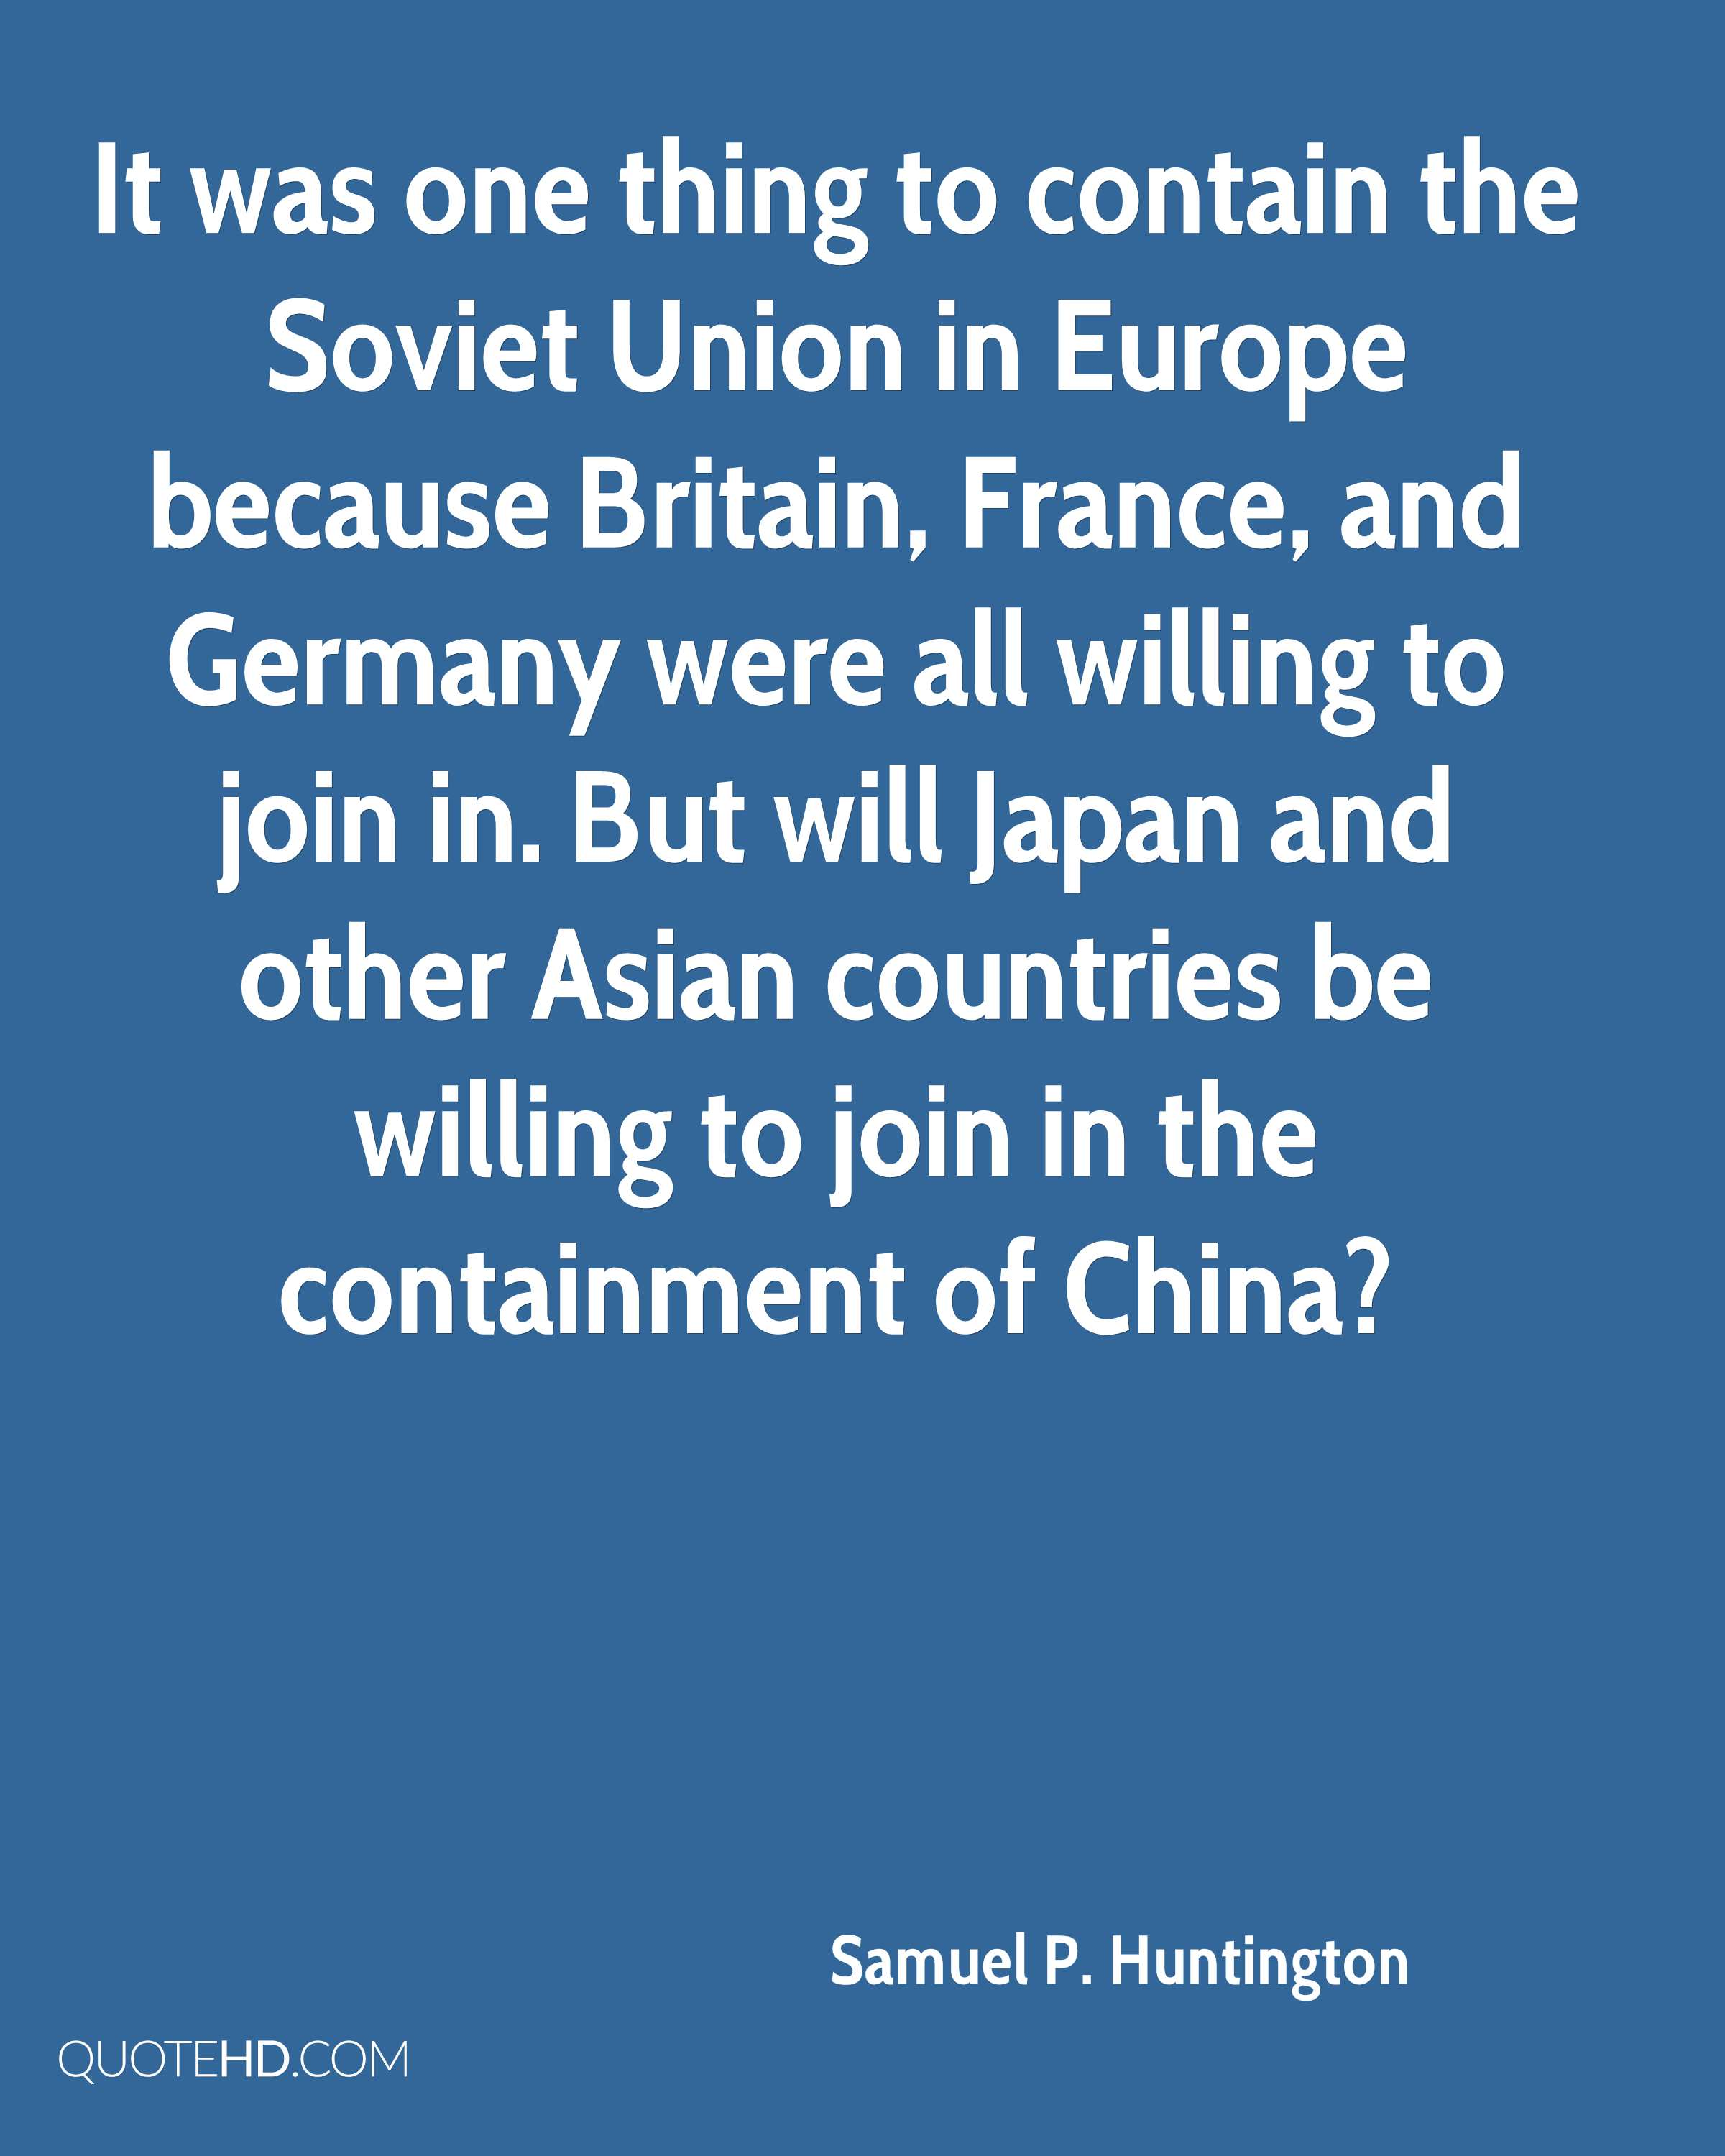 It was one thing to contain the Soviet Union in Europe because Britain, France, and Germany were all willing to join in. But will Japan and other Asian countries be willing to join in the containment of China?